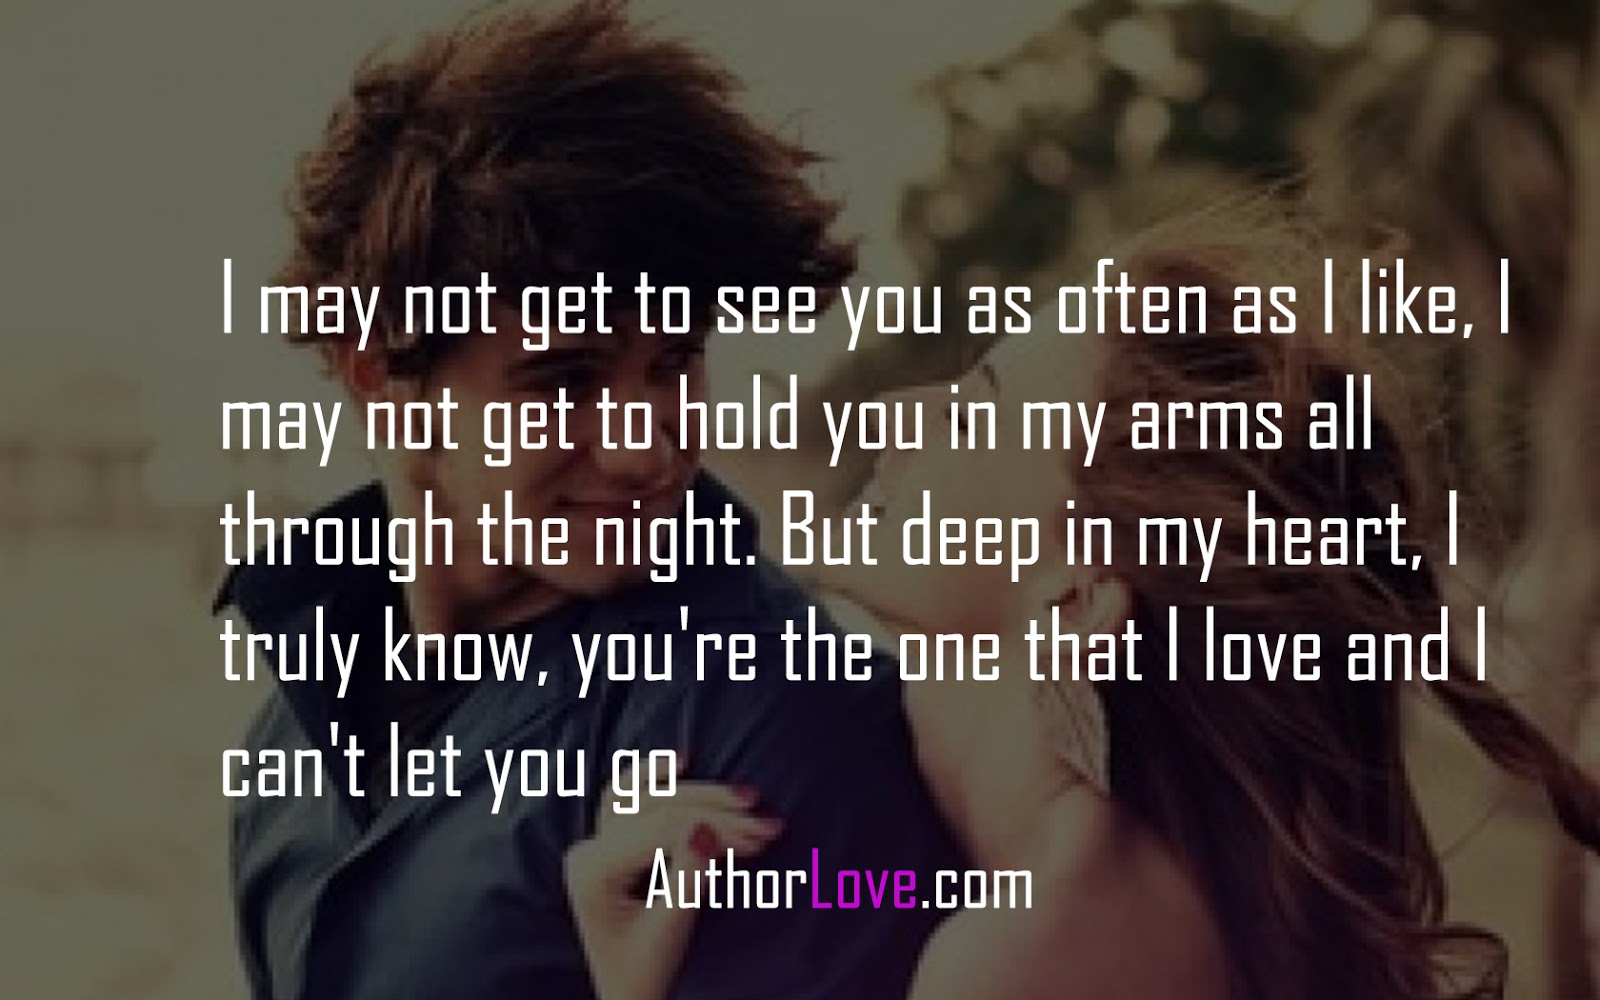 Romantic I Love You Quotes I May Not Get To See You As Often As I Like  Love Quotes  Author